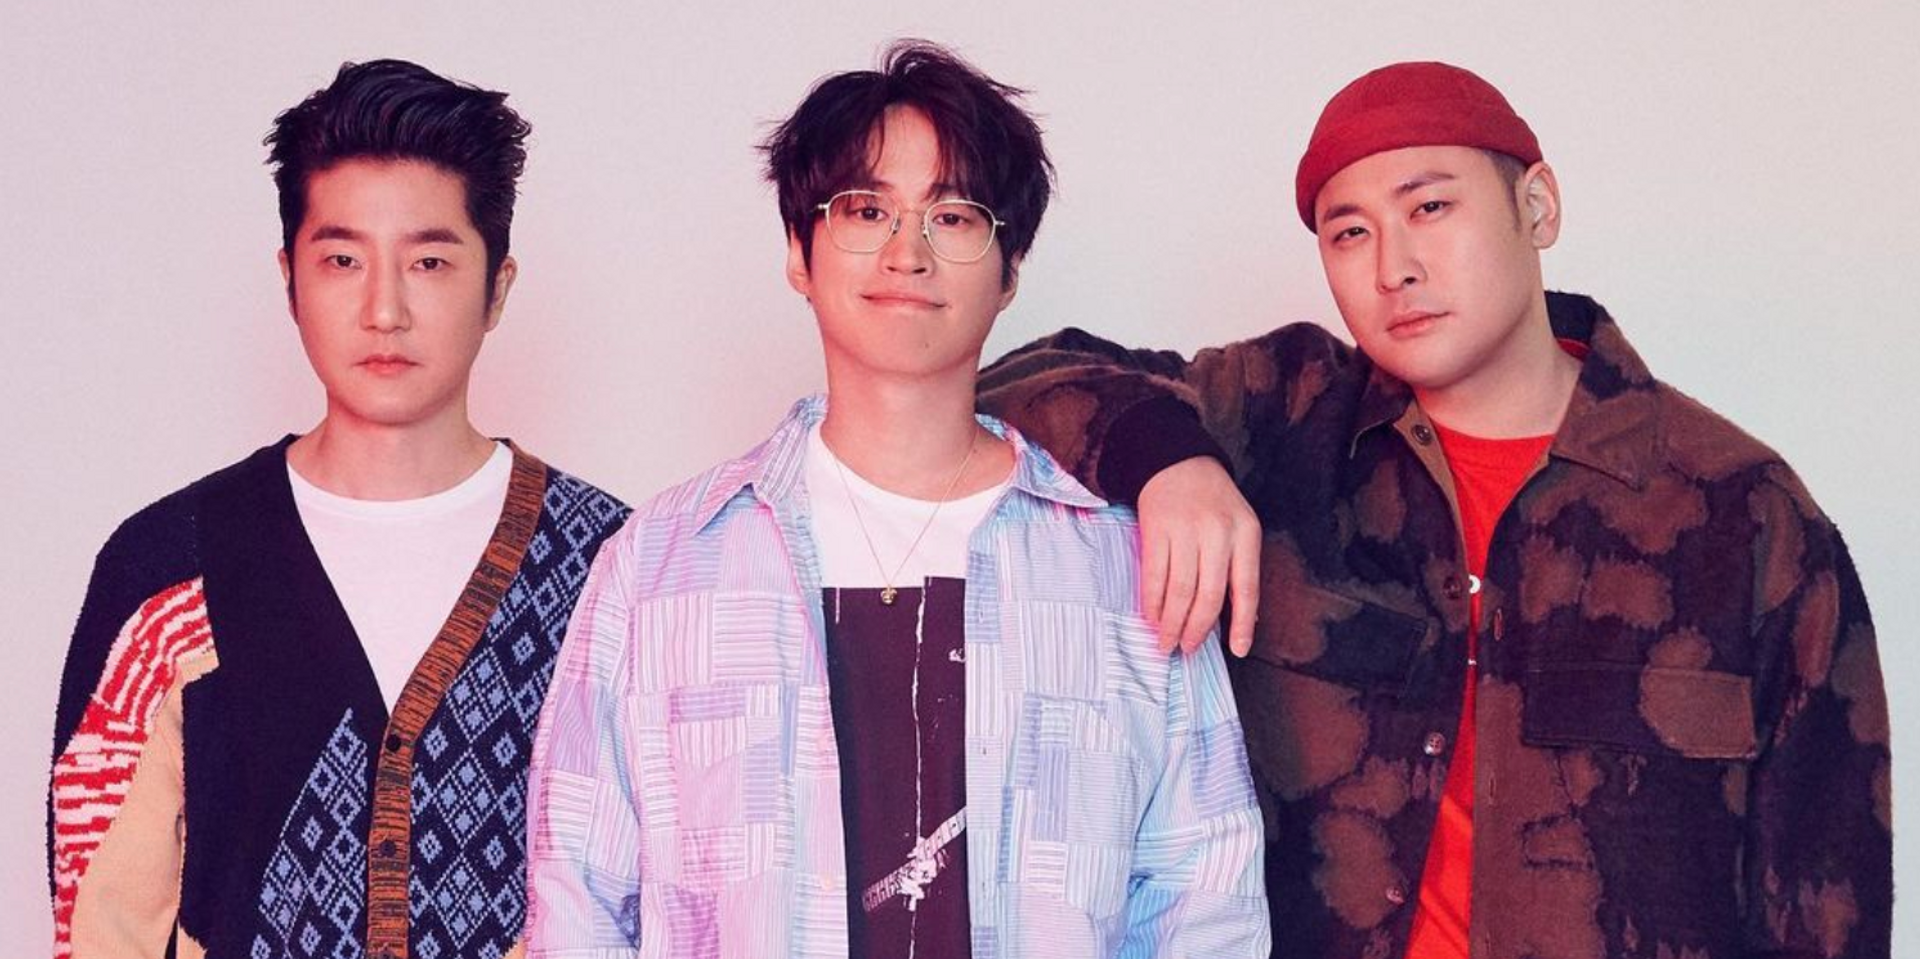 Epik High drops Part 1 of their new double album, 'Epik High Is Here,' featuring ZICO, CL, HEIZE, Nucksal, Kim Sawol, and Changmo